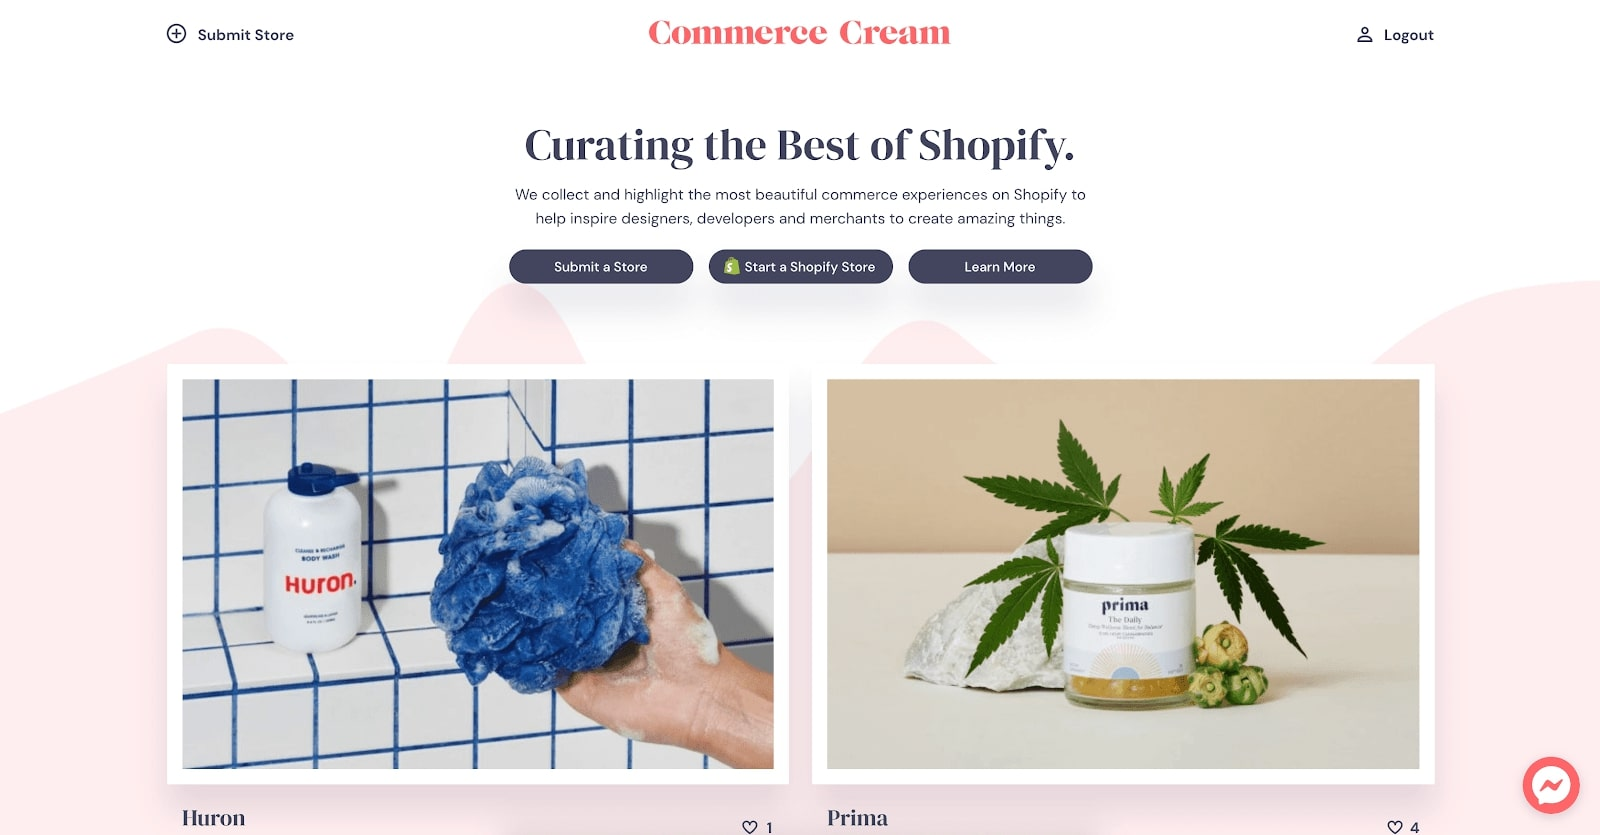 commerce cream shopify web designs